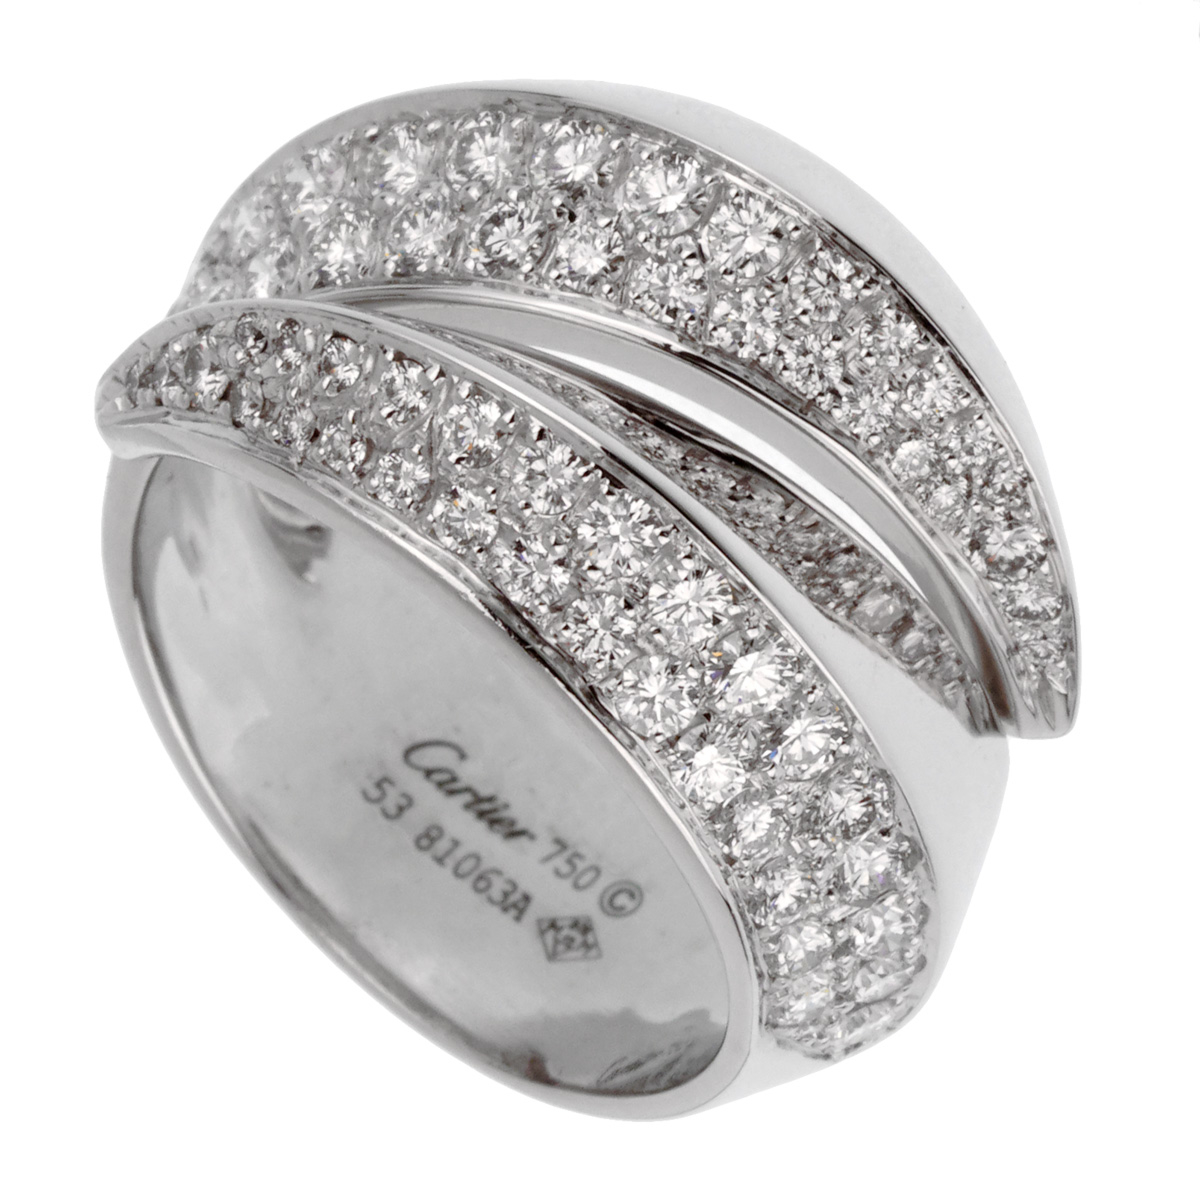 Cartier Panthere White Gold Diamond Cocktail Ring - Cartier Jewelry